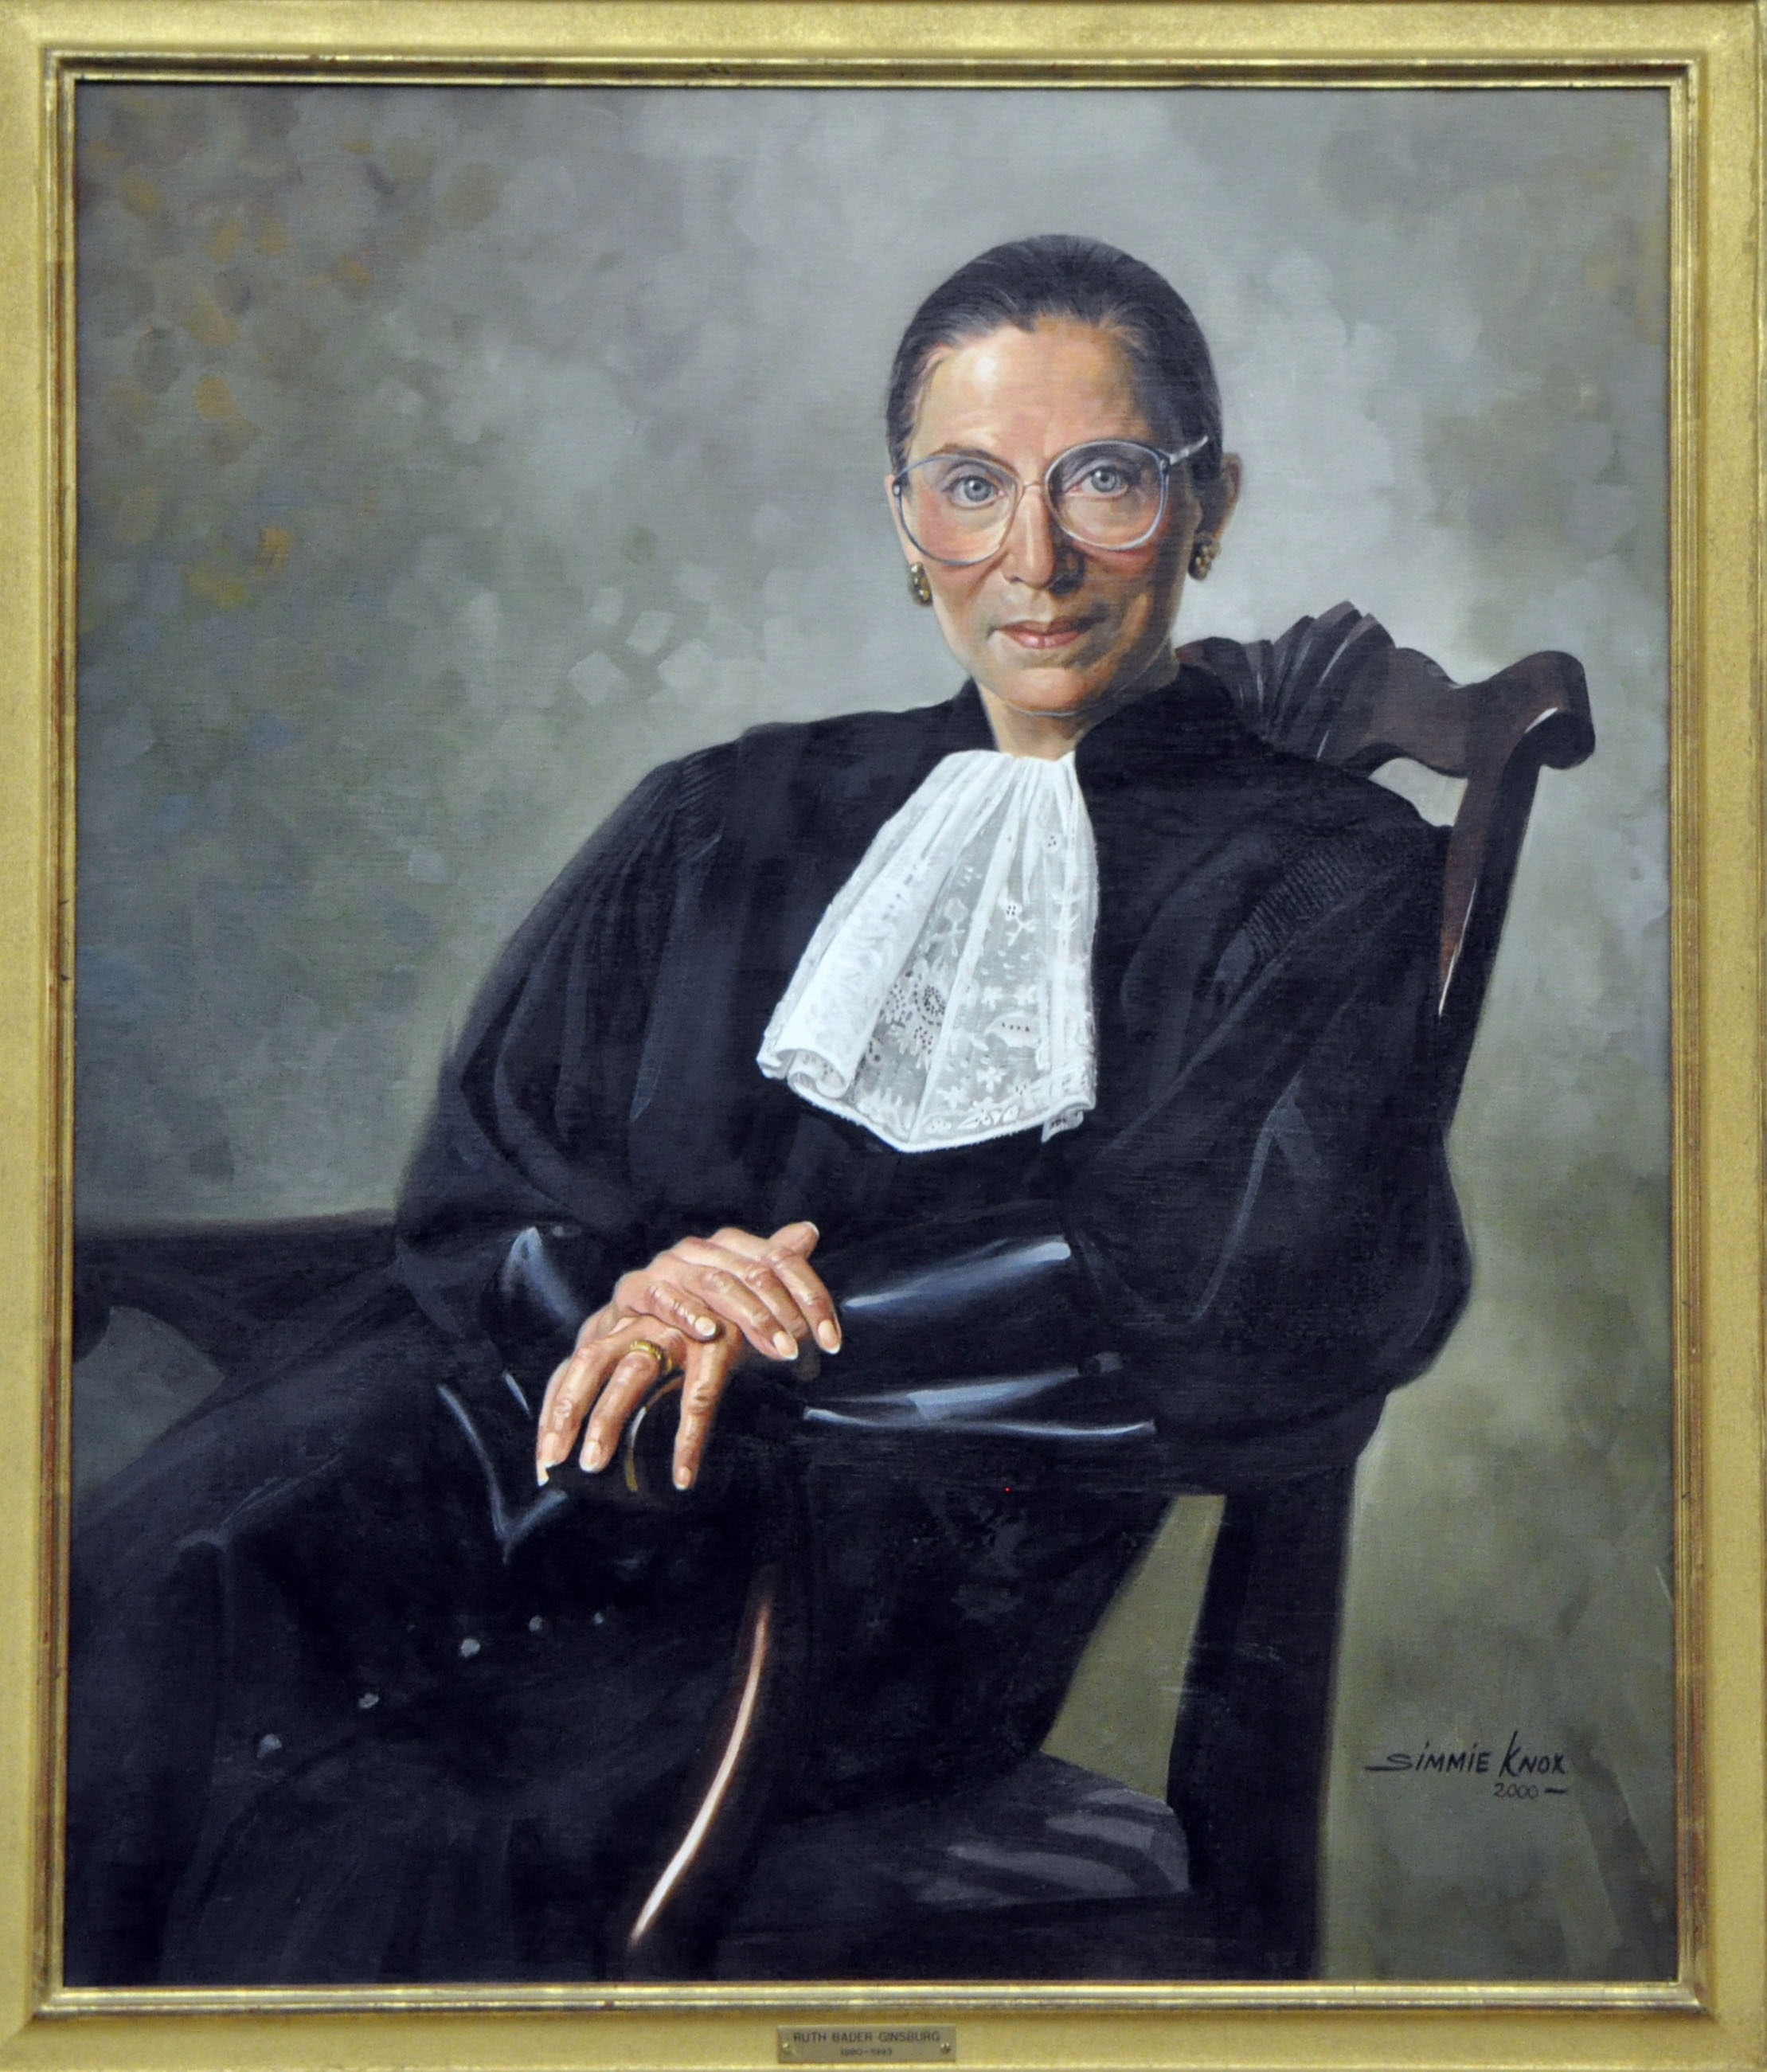 Surgeon Gives Justice Ginsburg 3rd Lung to 'Allow for Epic Bong Rips'